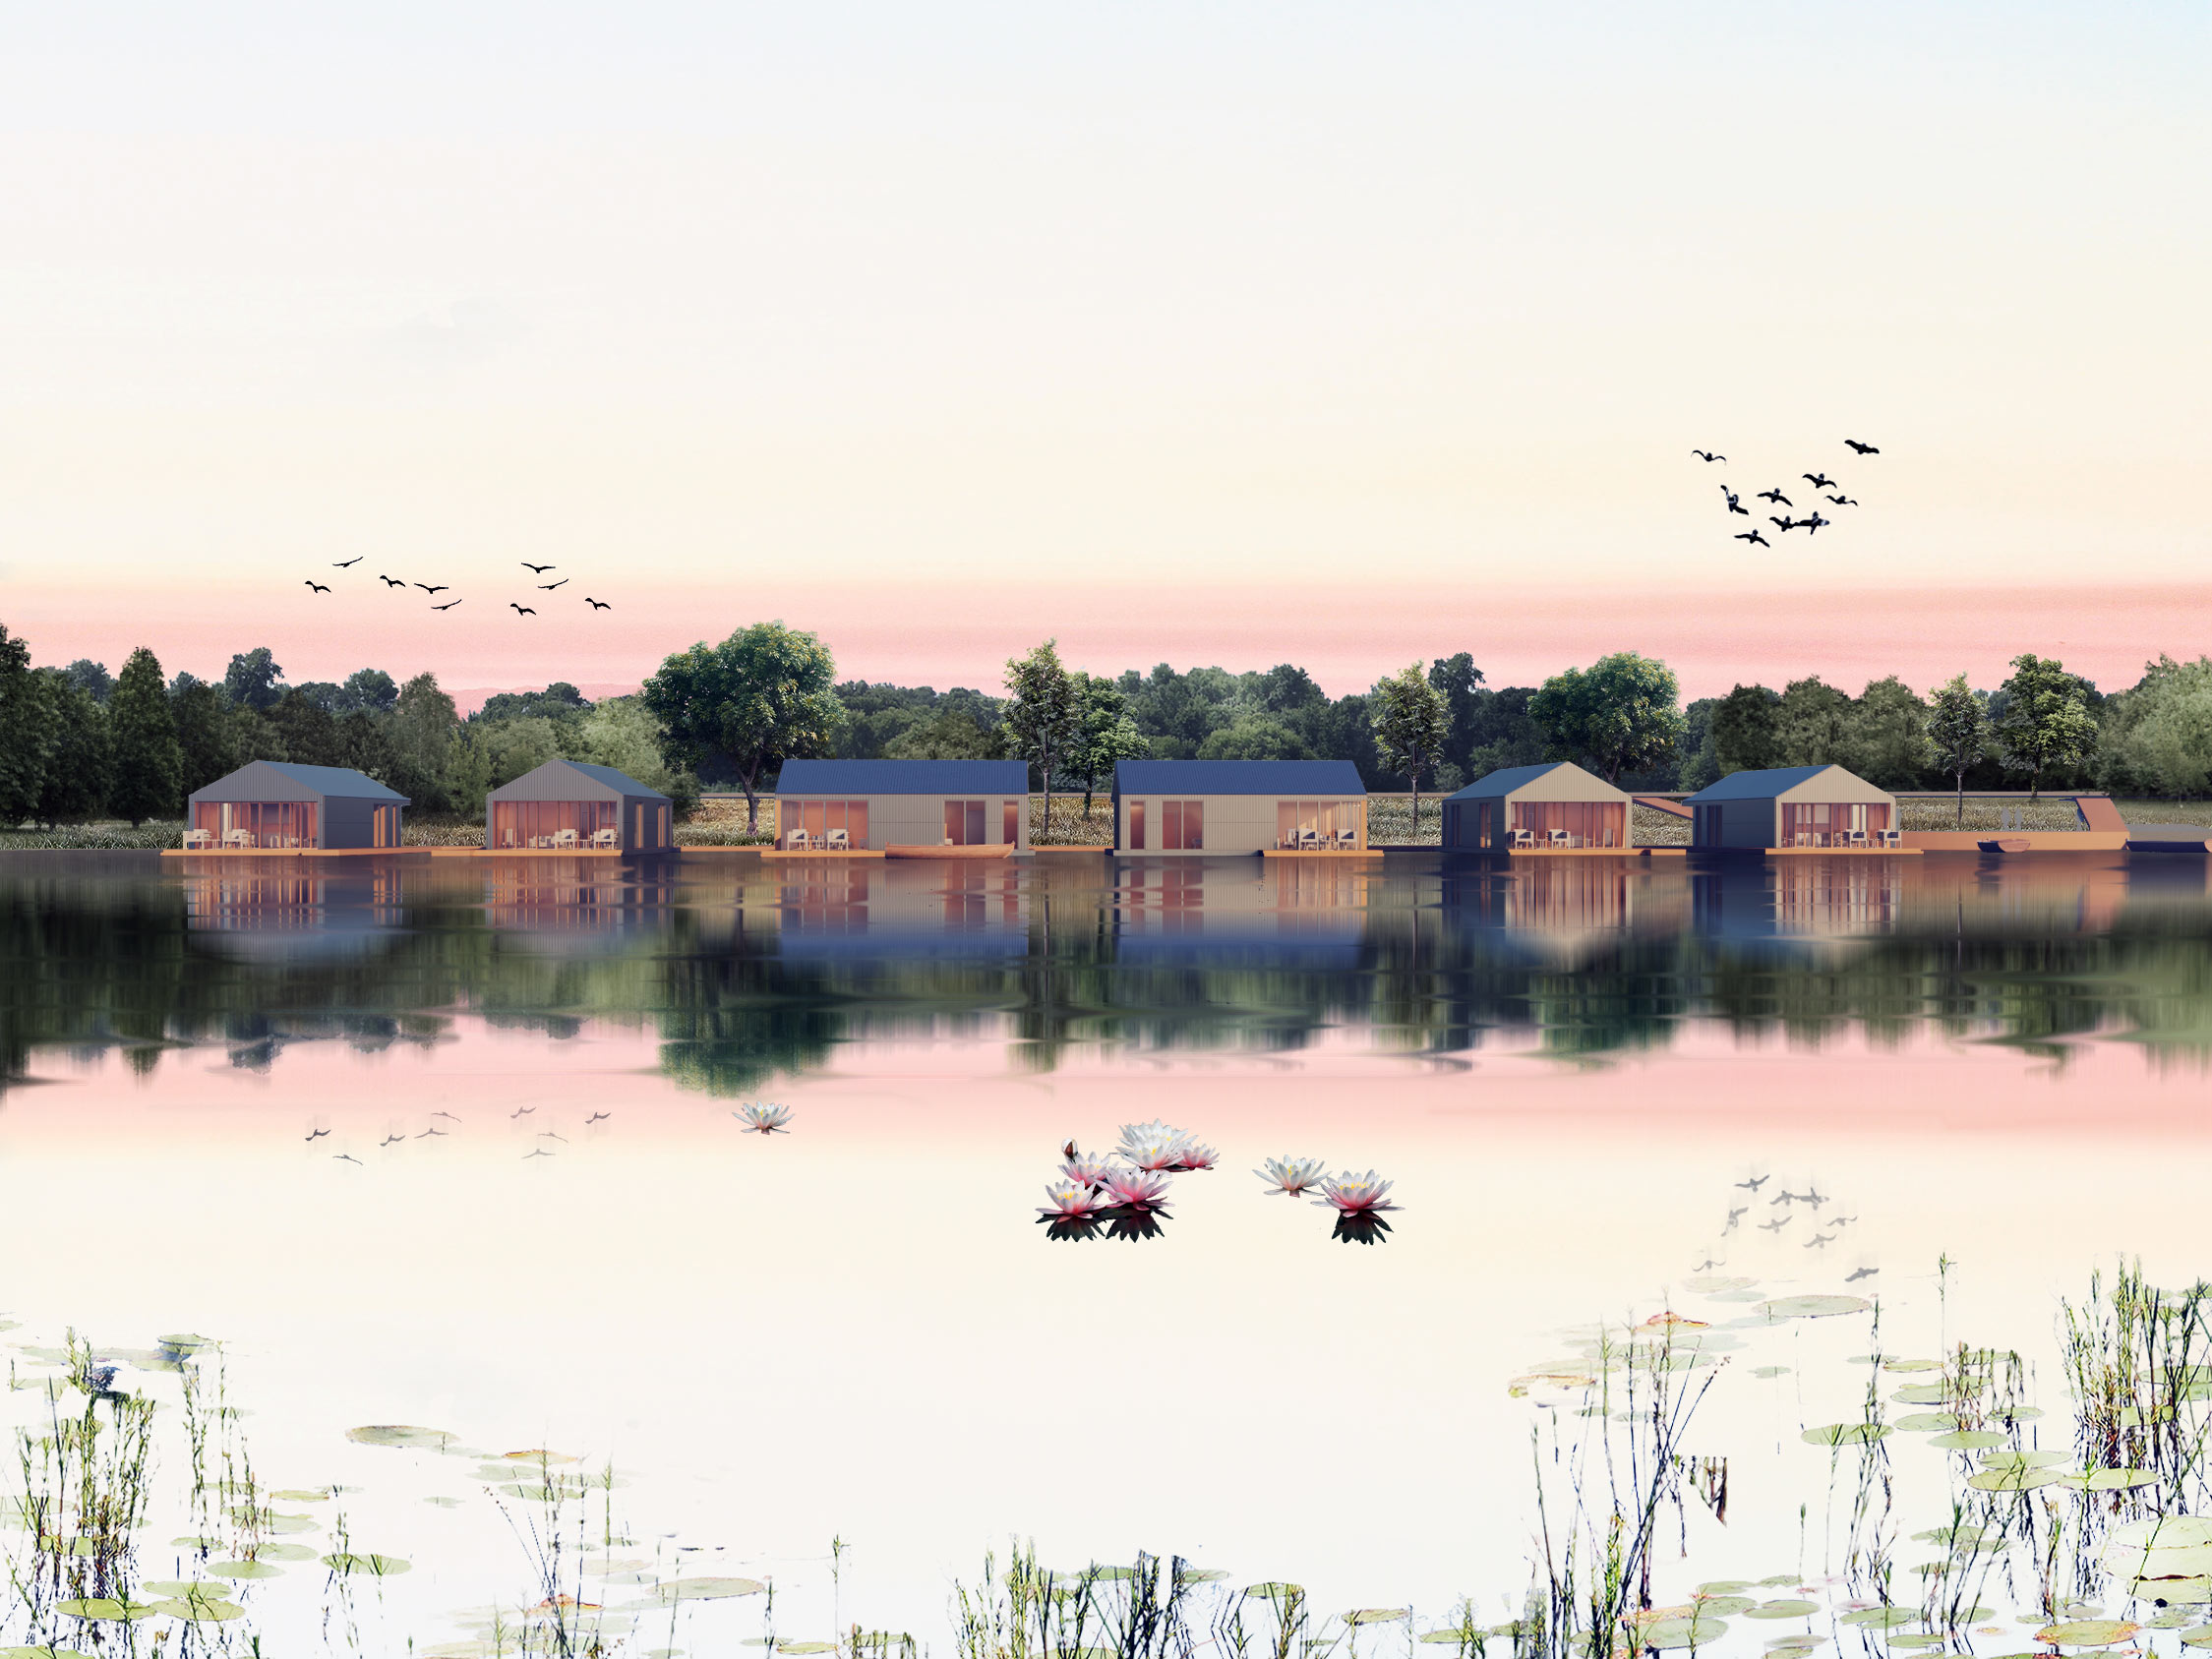 Waterside view of Ashwicken Lake Floating Lodges